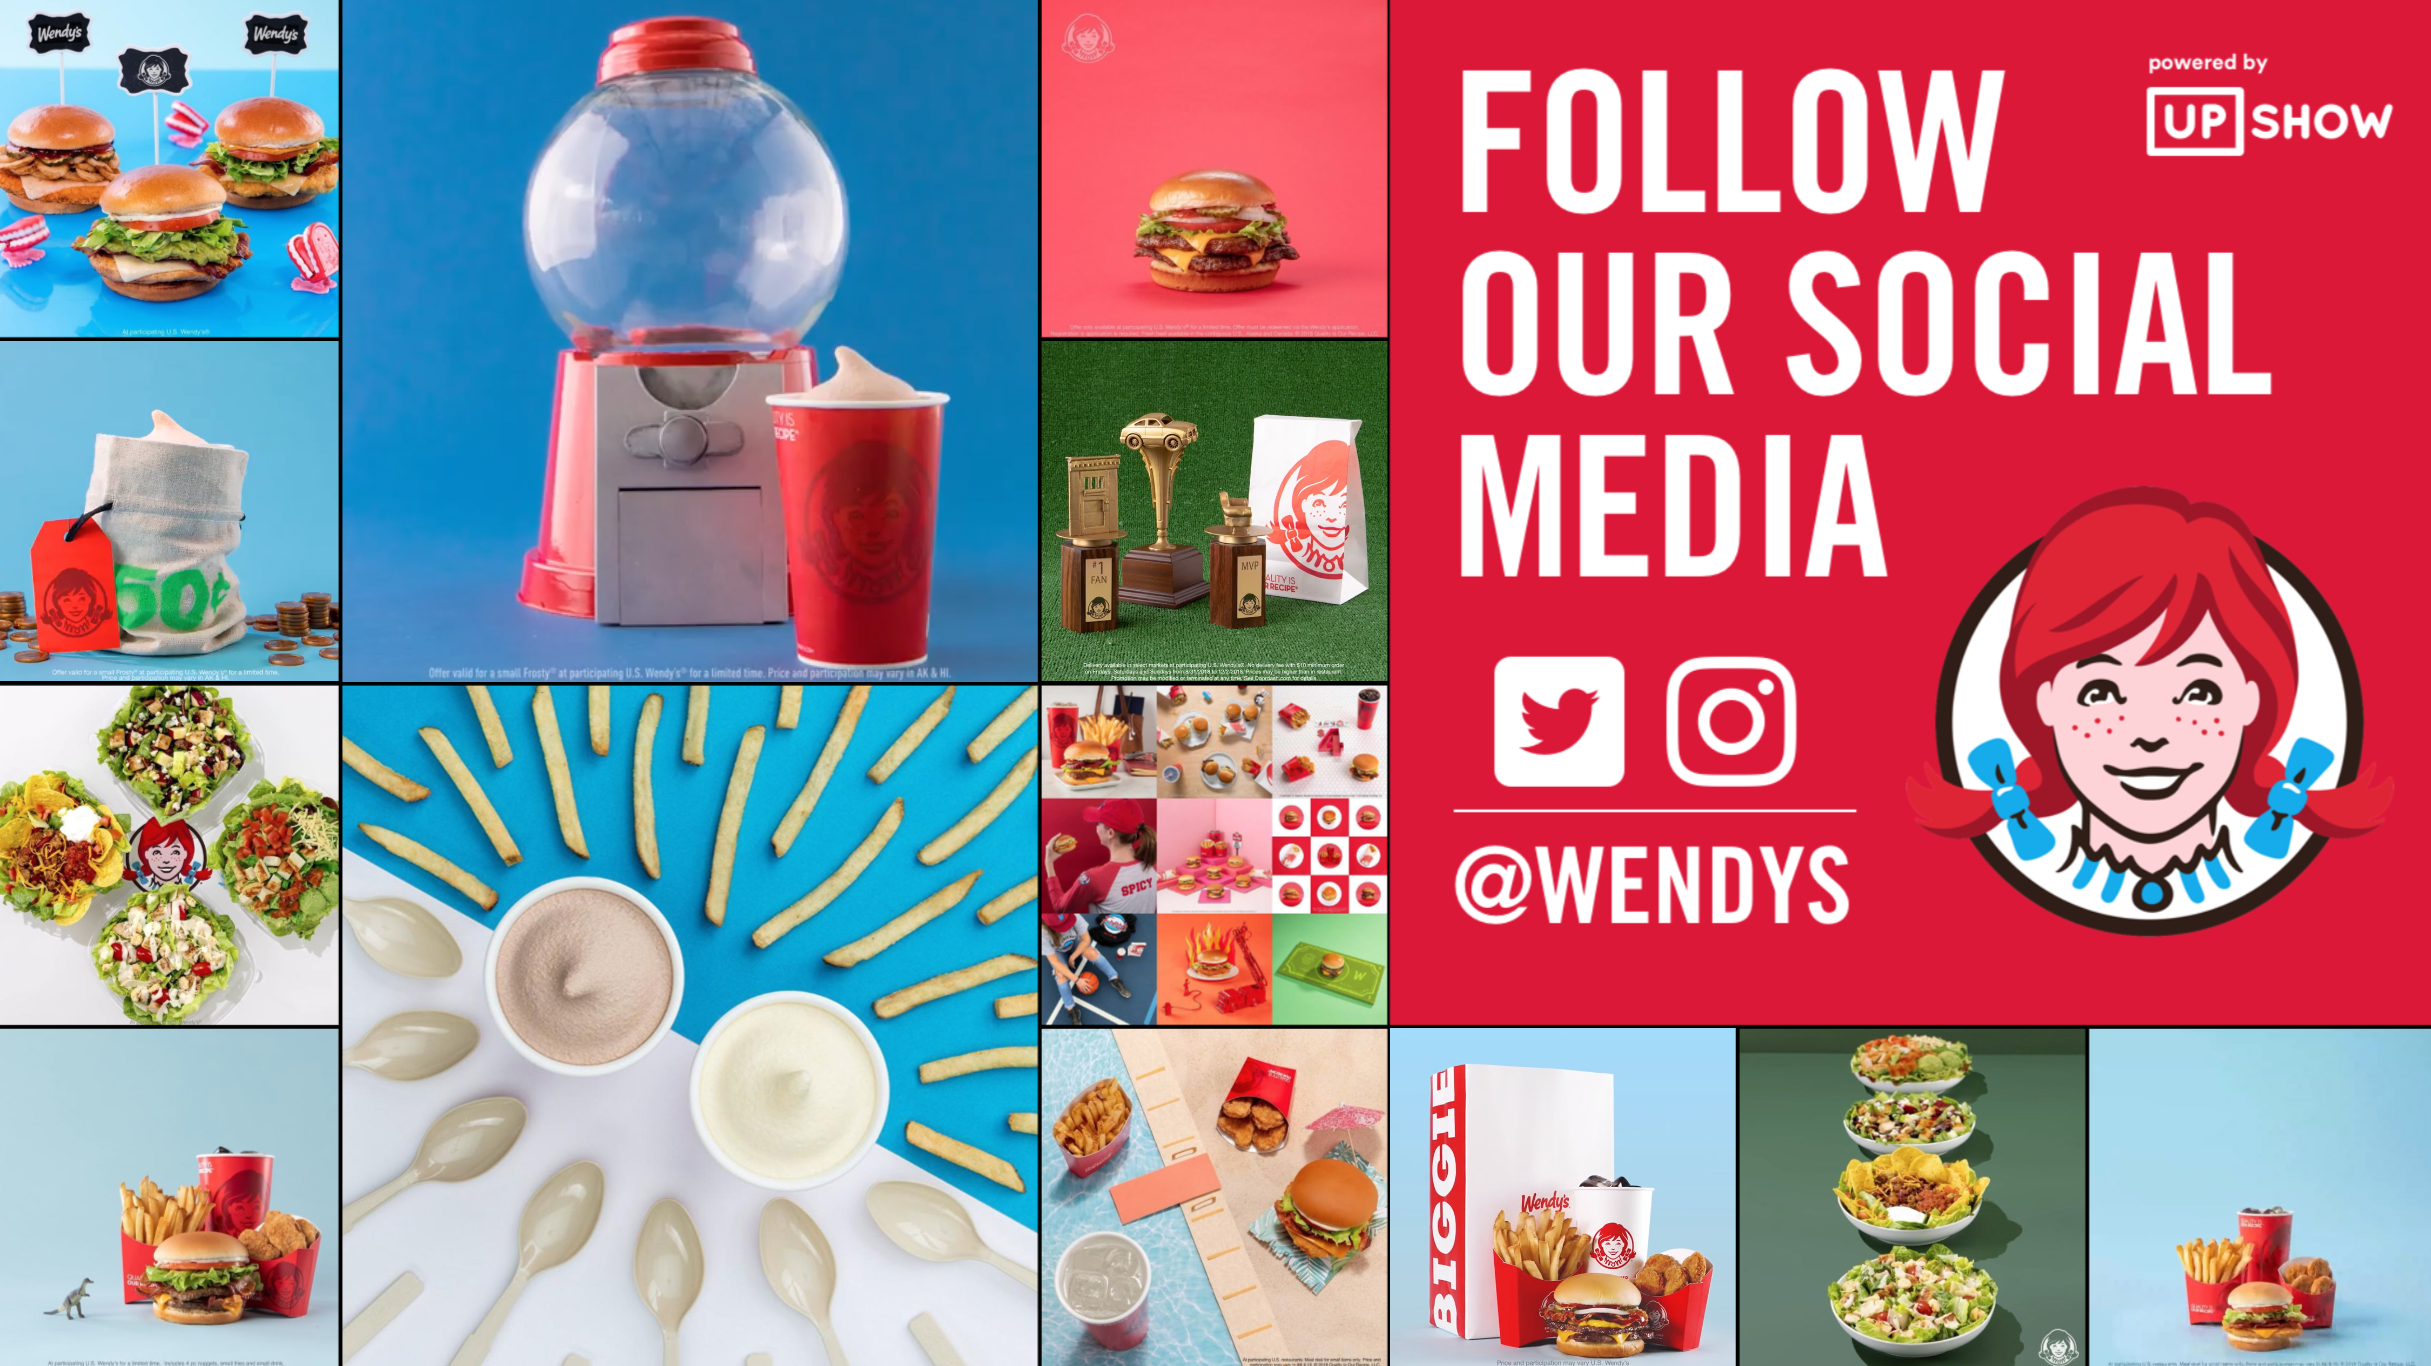 Wendy's franchisees cut the cord on their TV service in favor of a branded platform that highlighted their restaurant's signage and hyperlocal entertainment